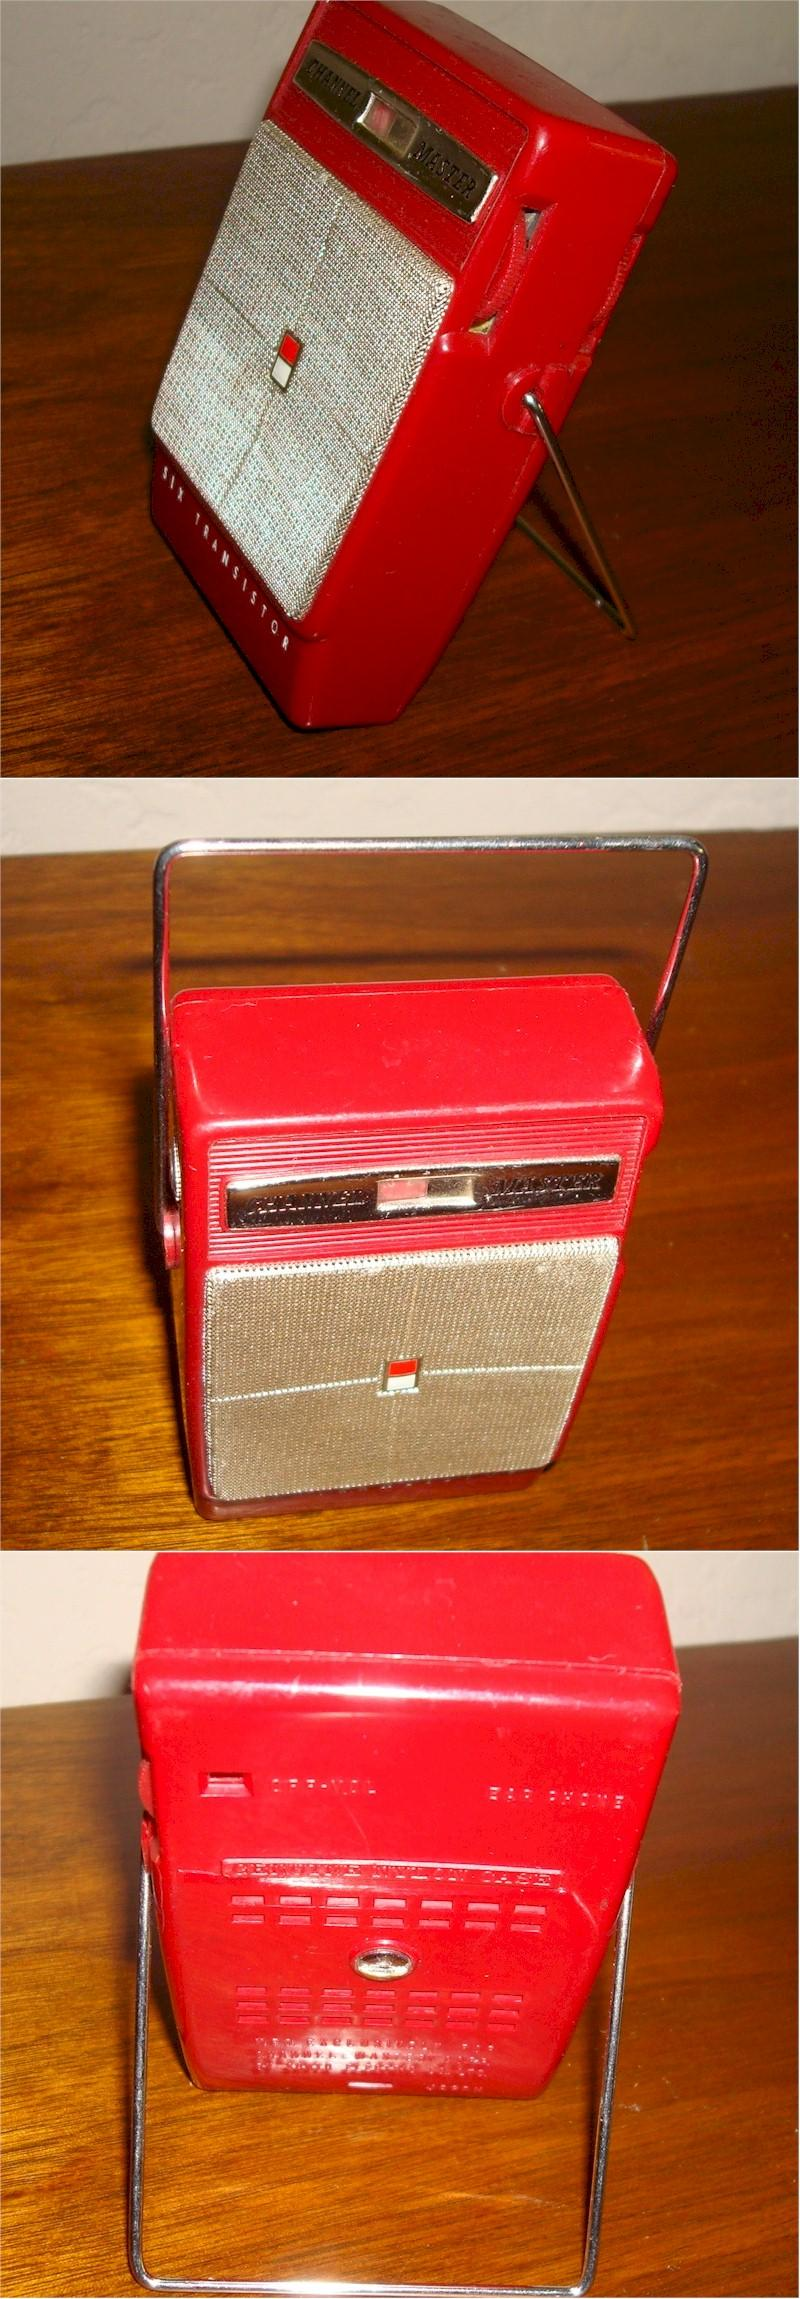 Channel Master 6509 Portable (1960)